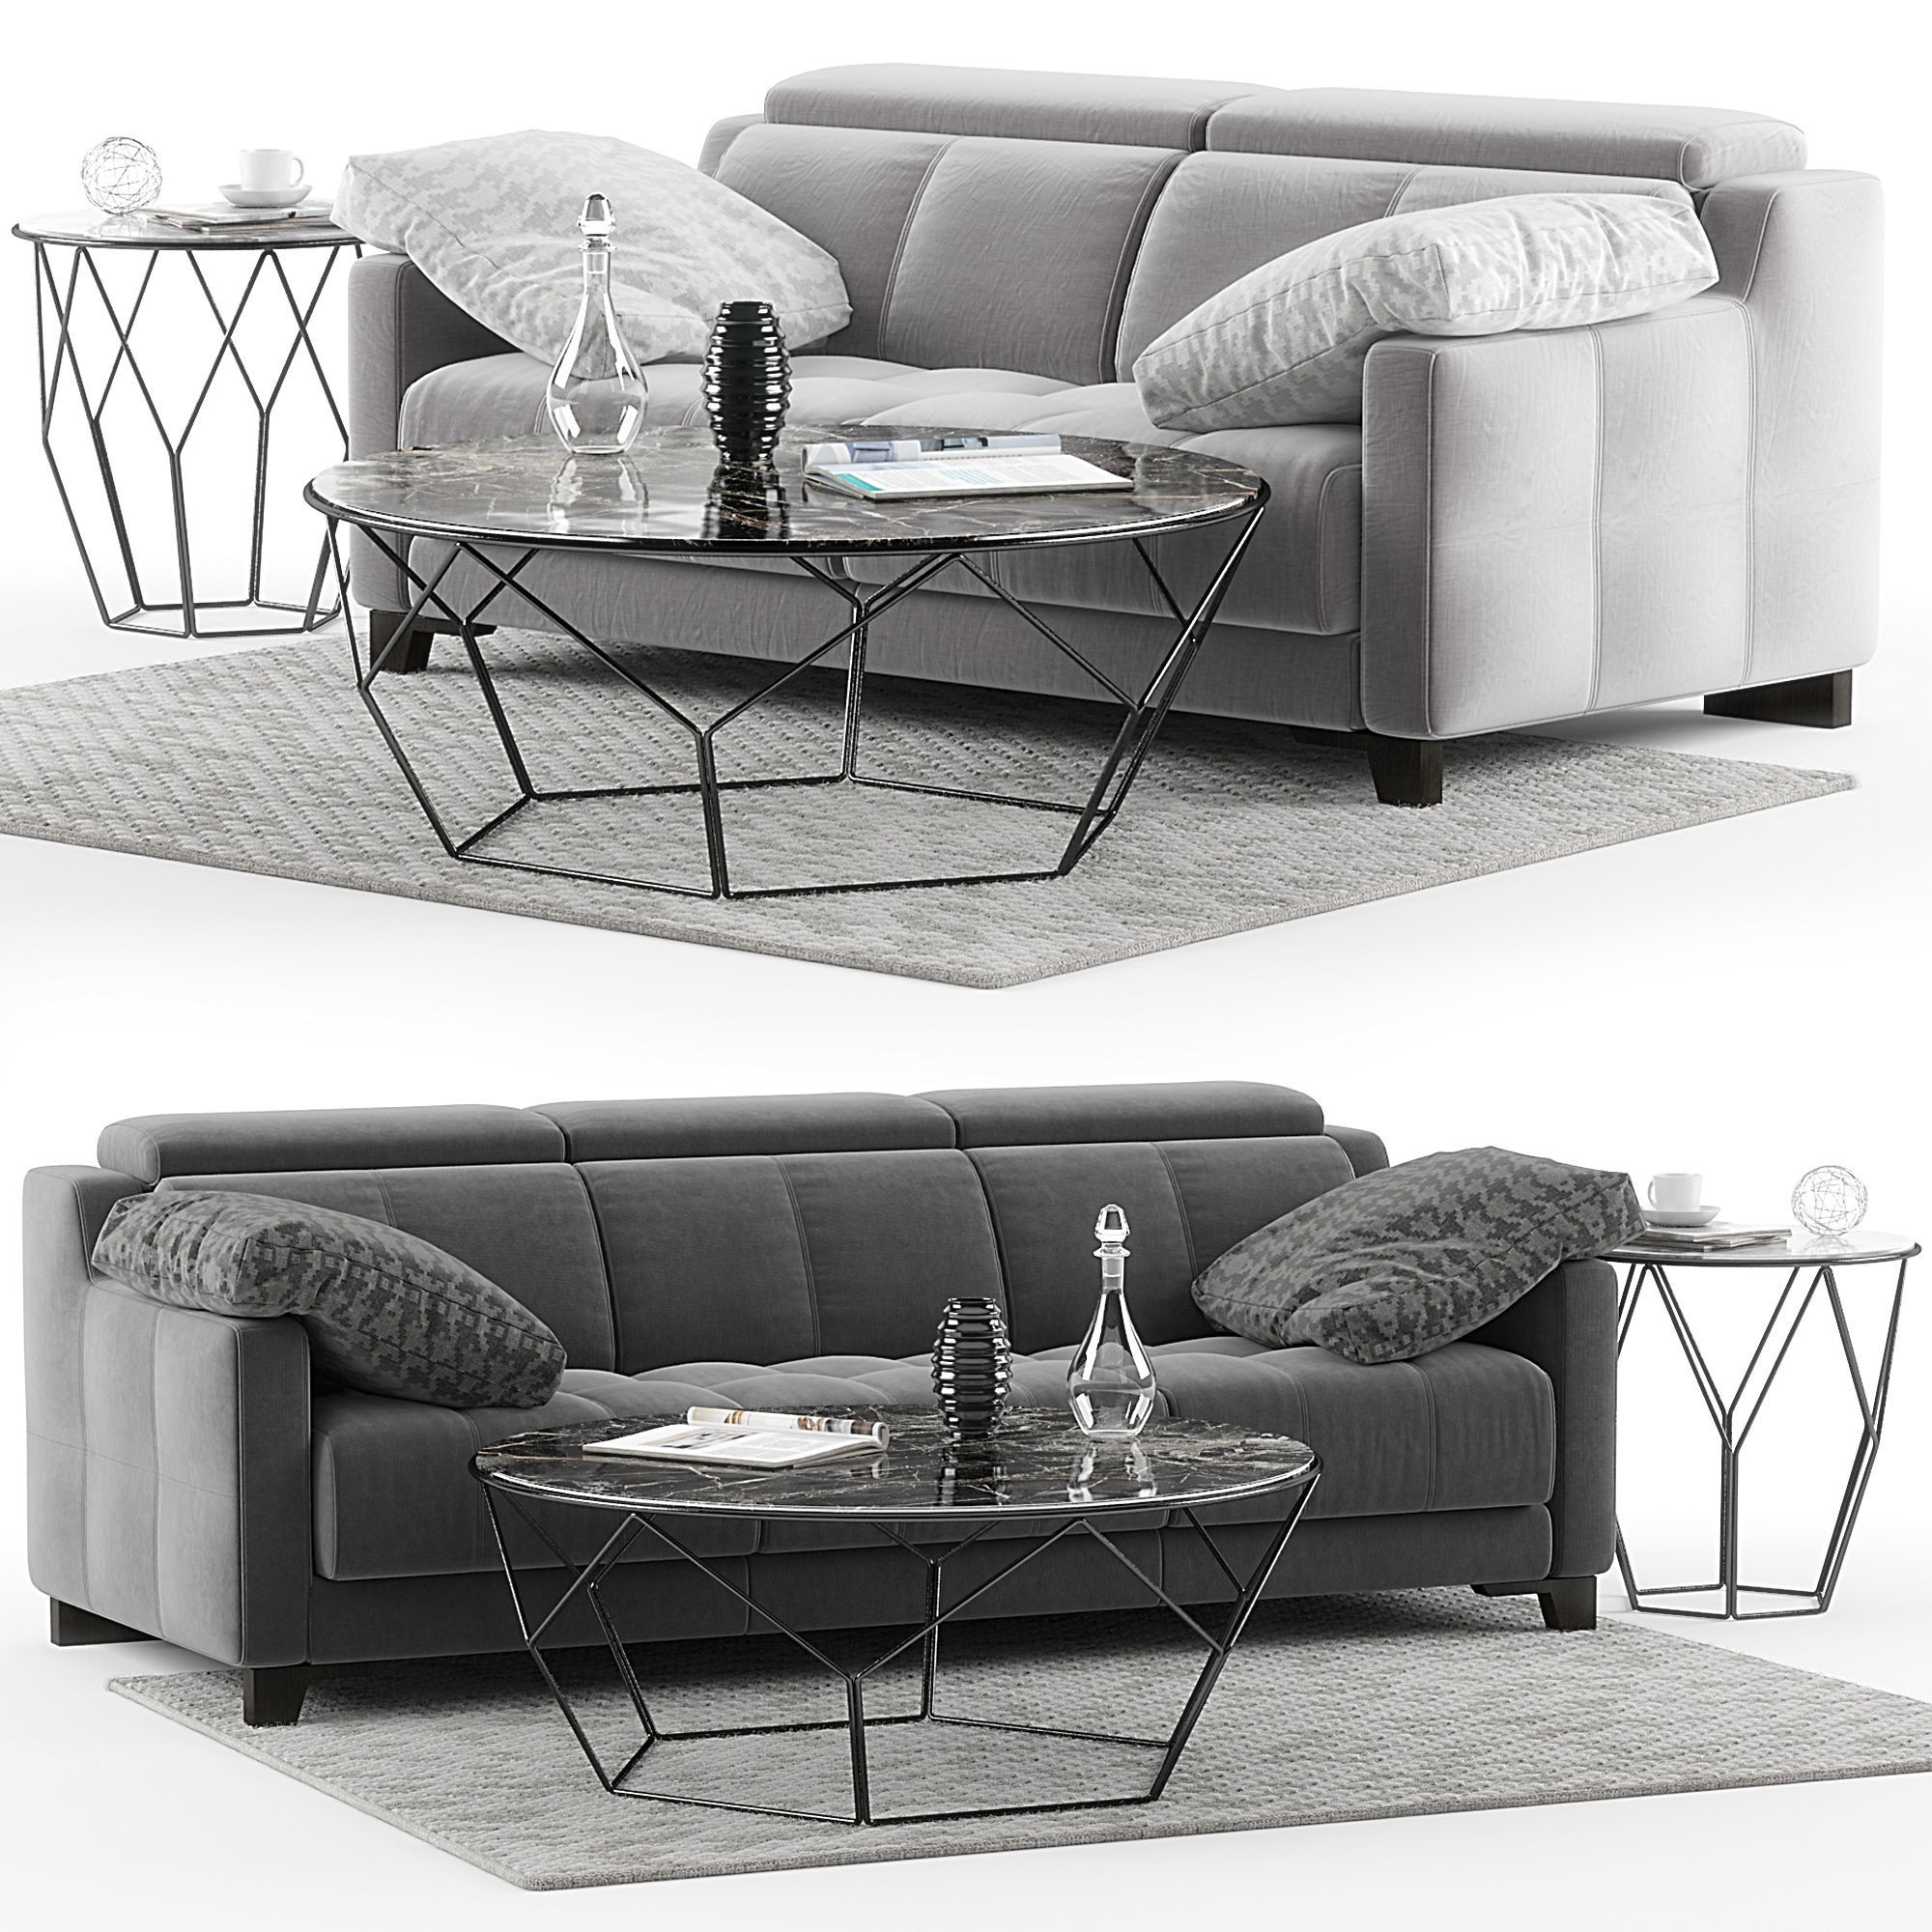 DVN Star Gino sofa set